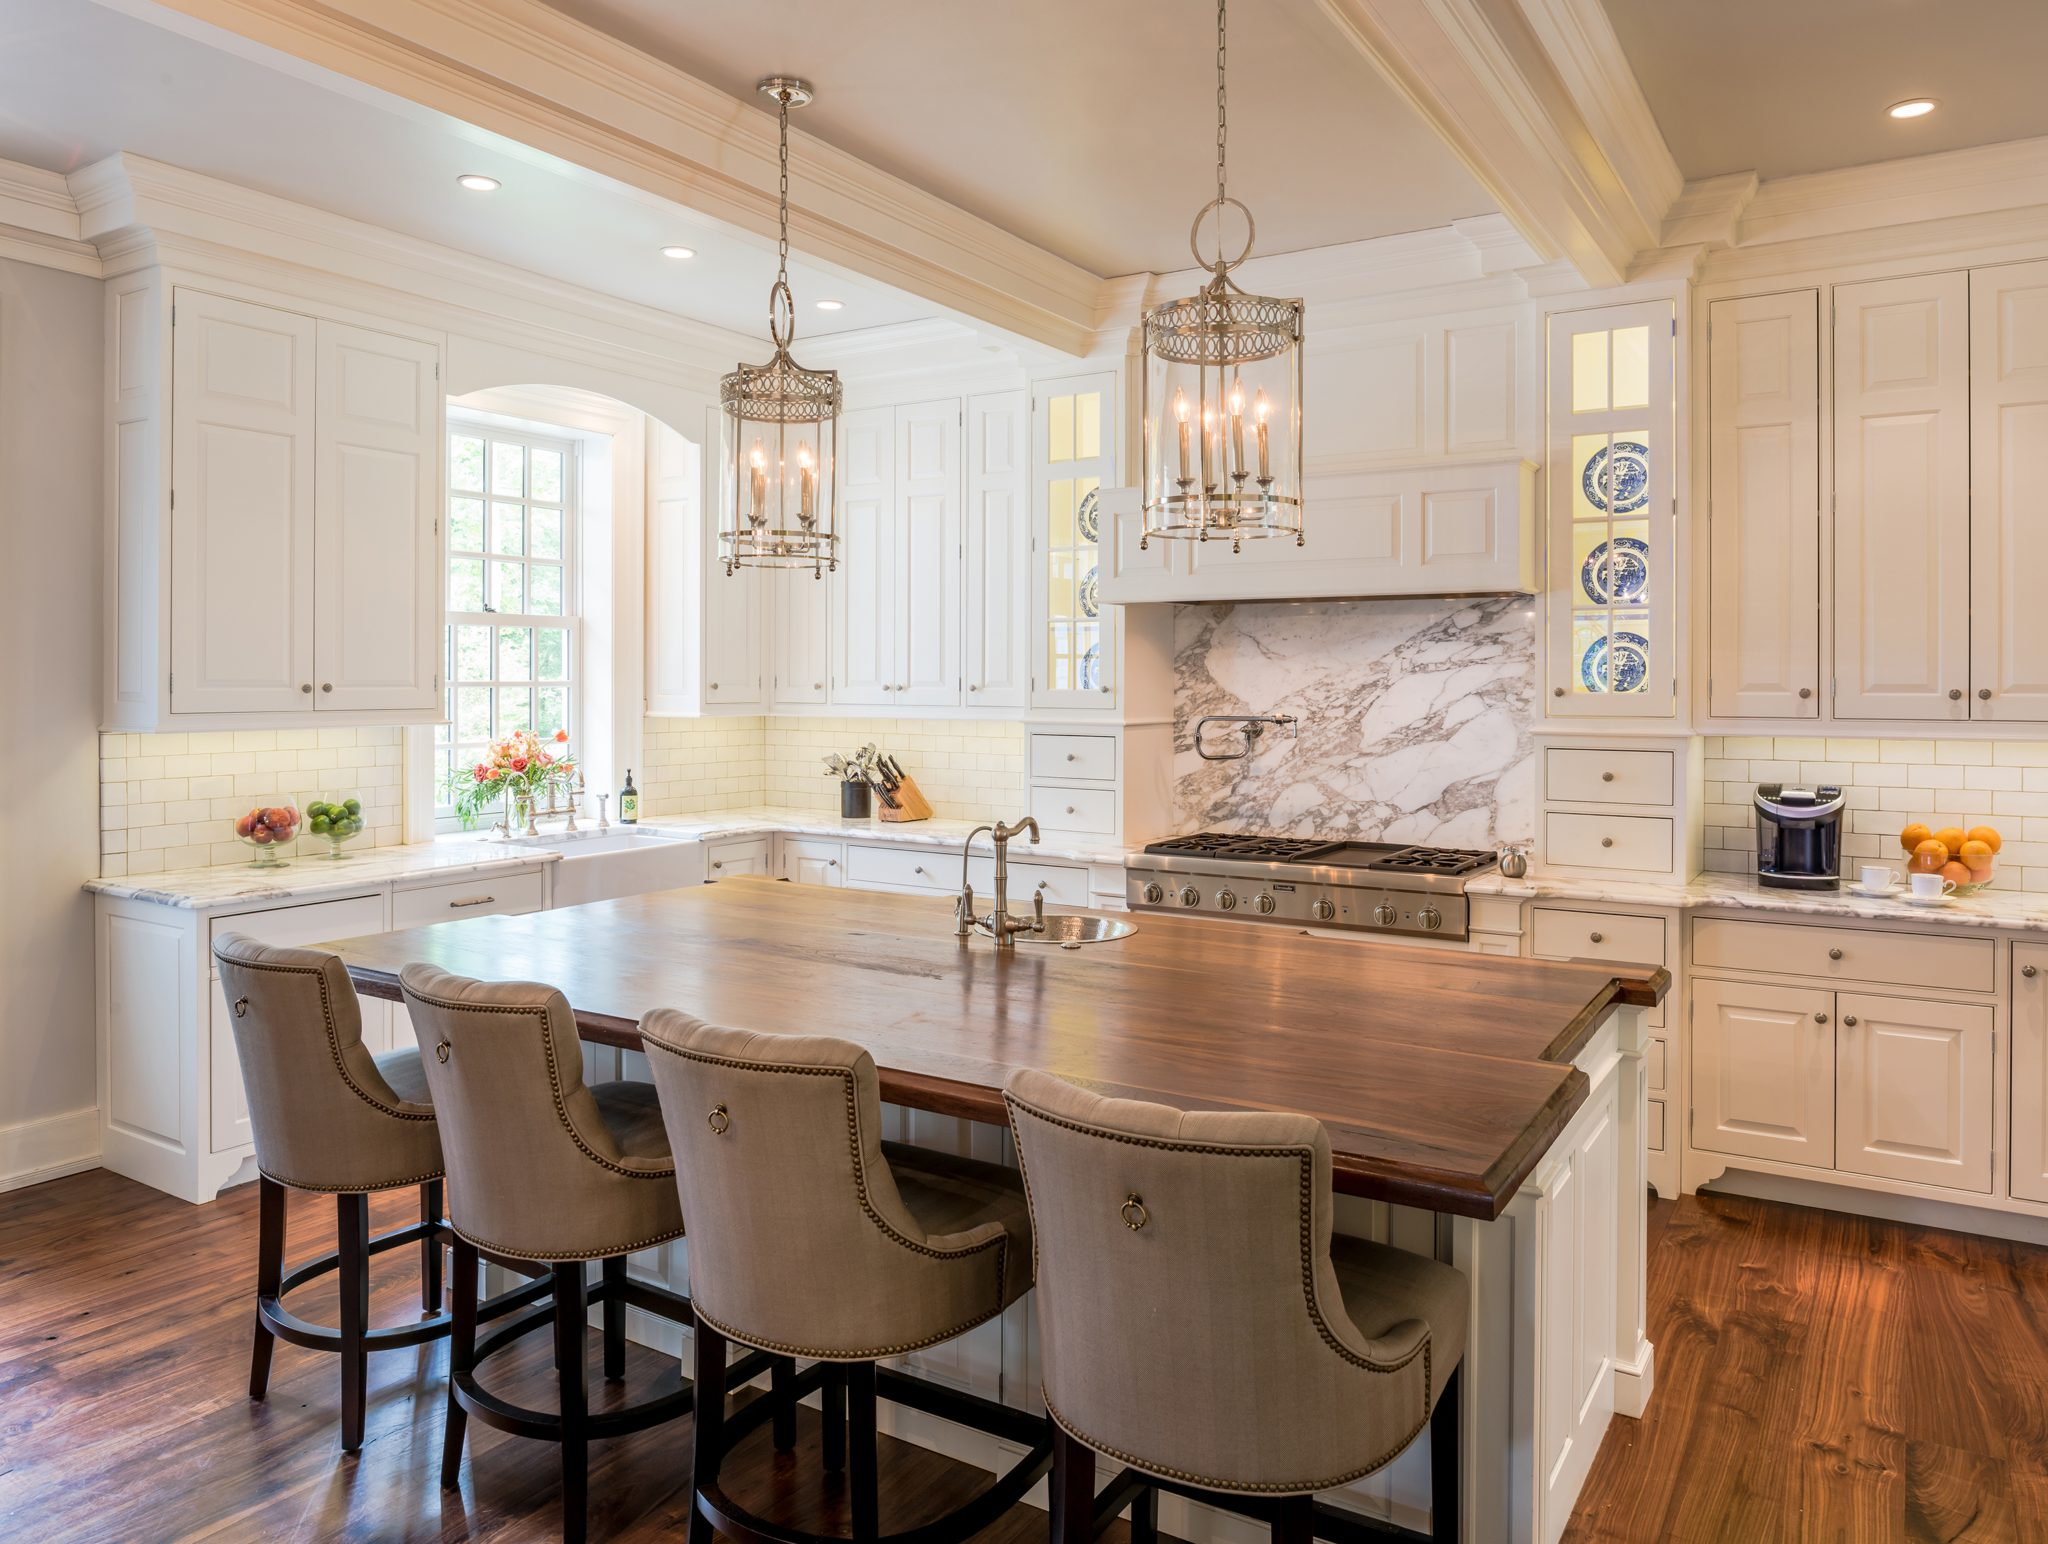 Colonial revival farmhouse kitchen with traditional details in Horsham, PA, by Period Architecture